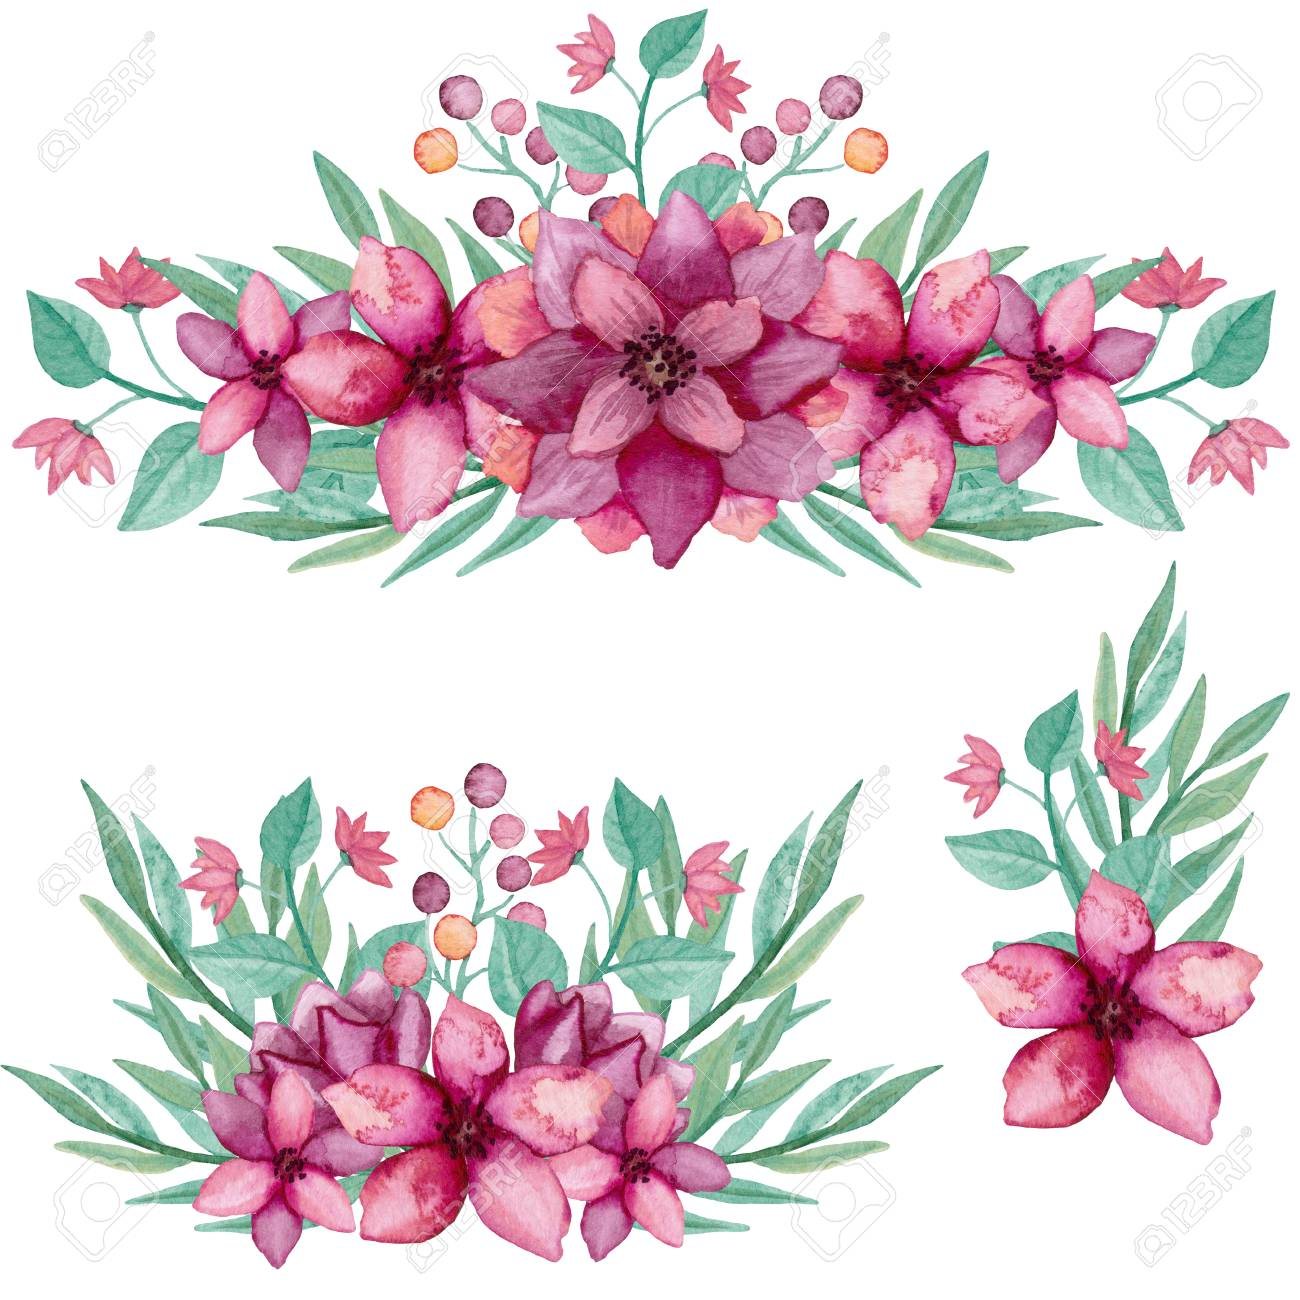 Set of bouquets with watercolor deep pink flowers and green leaves set of bouquets with watercolor deep pink flowers and green leaves stock photo 71929037 mightylinksfo